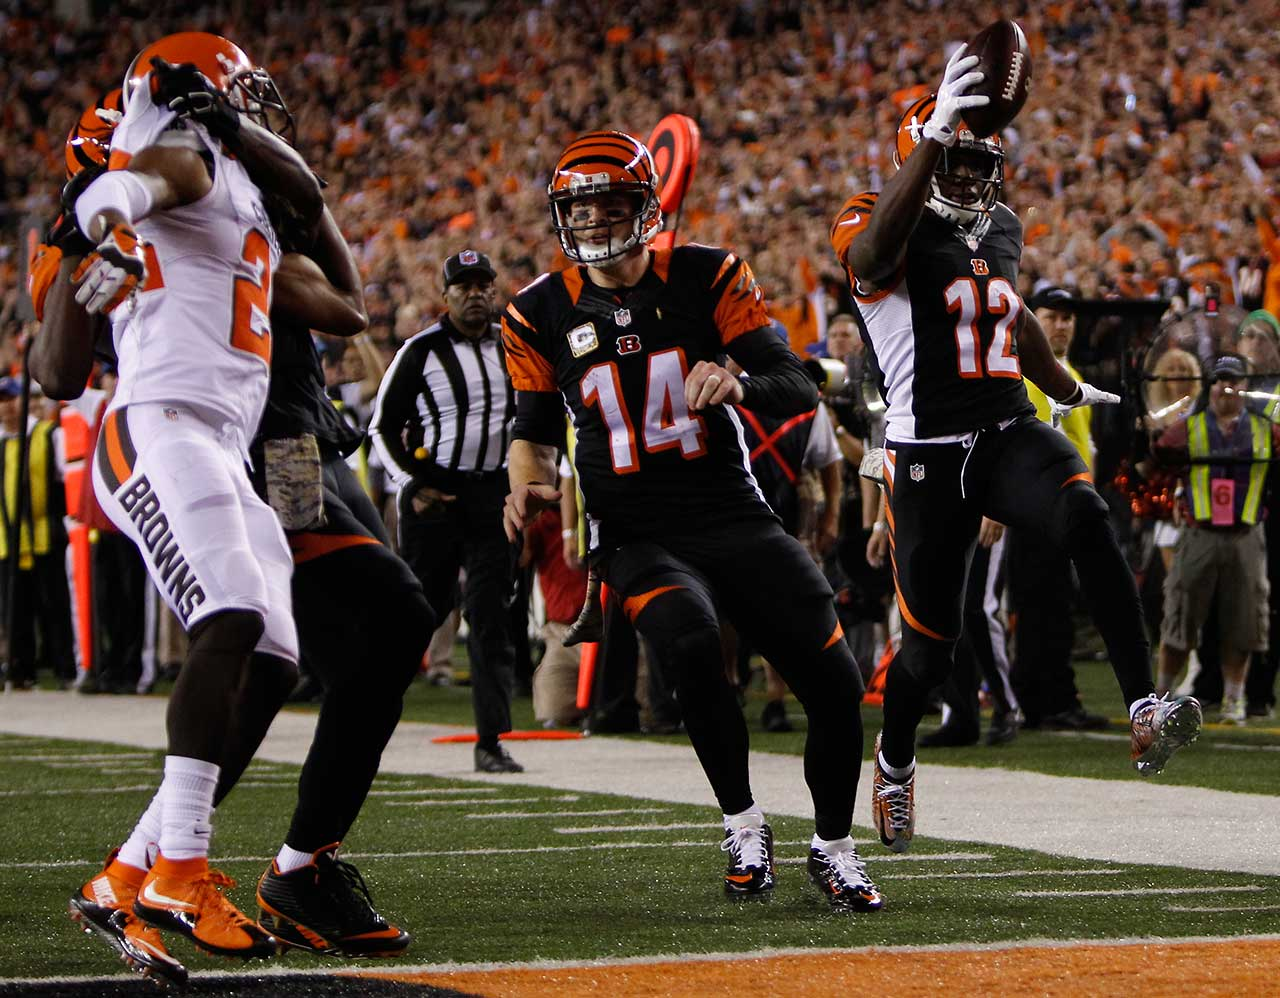 Mohamed Sanu joined the fraternity when he scored on this 25-yard run against the Cleveland Browns on Nov. 5. The Cincinnati receiver has 11 receiving touchdowns, one two-point conversion and has thrown two touchdown passes among his three passing attempts.